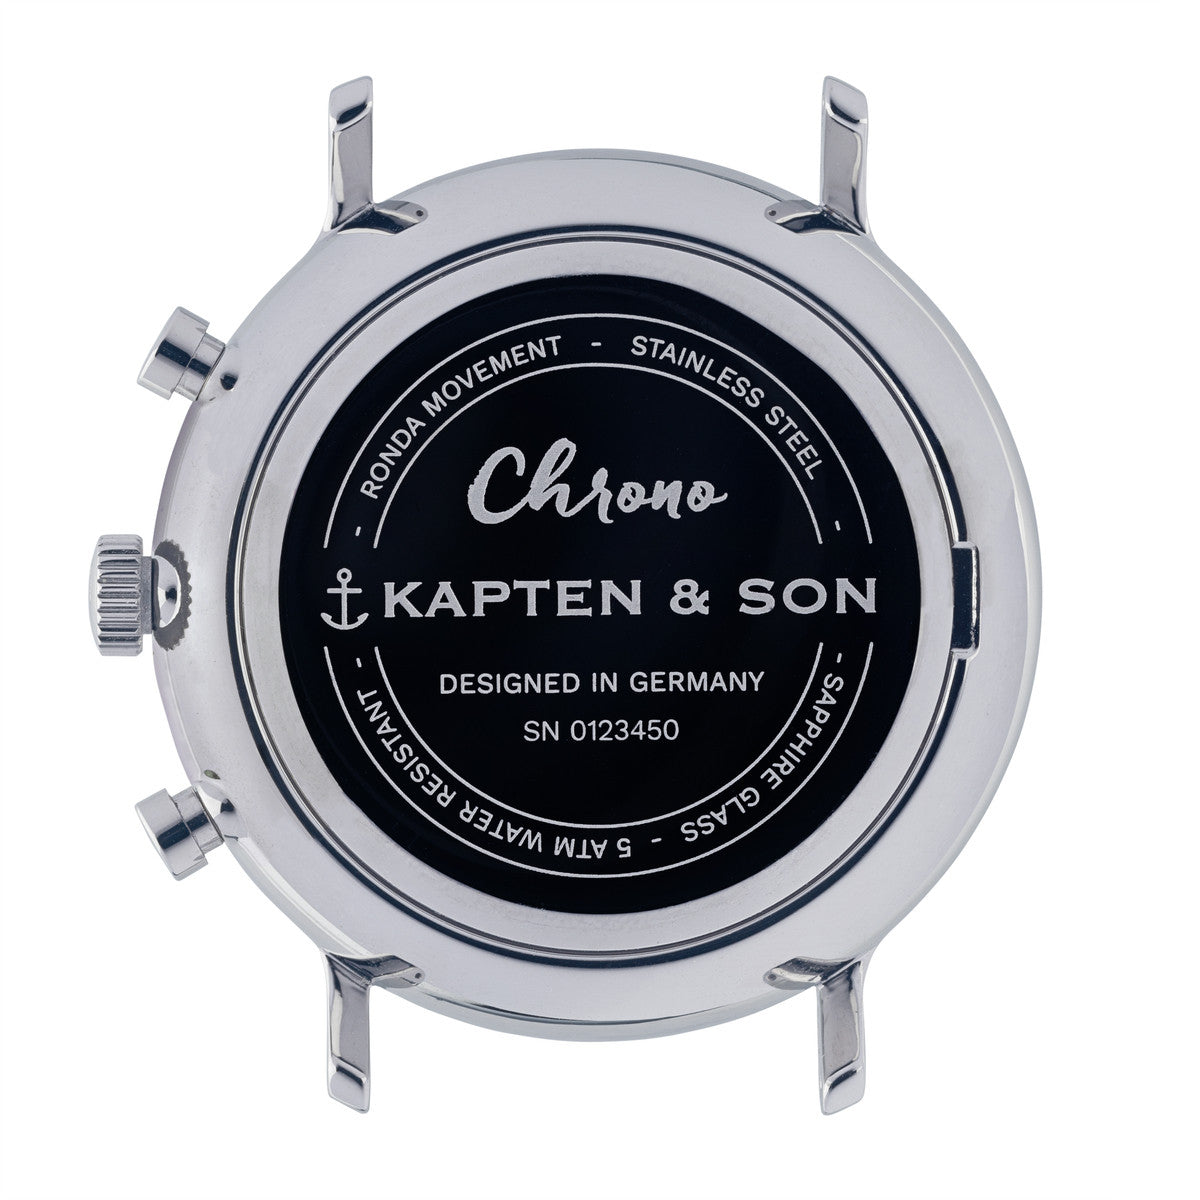 Chrono Silver Sand Woven Leather - Kapten & Son - Japan